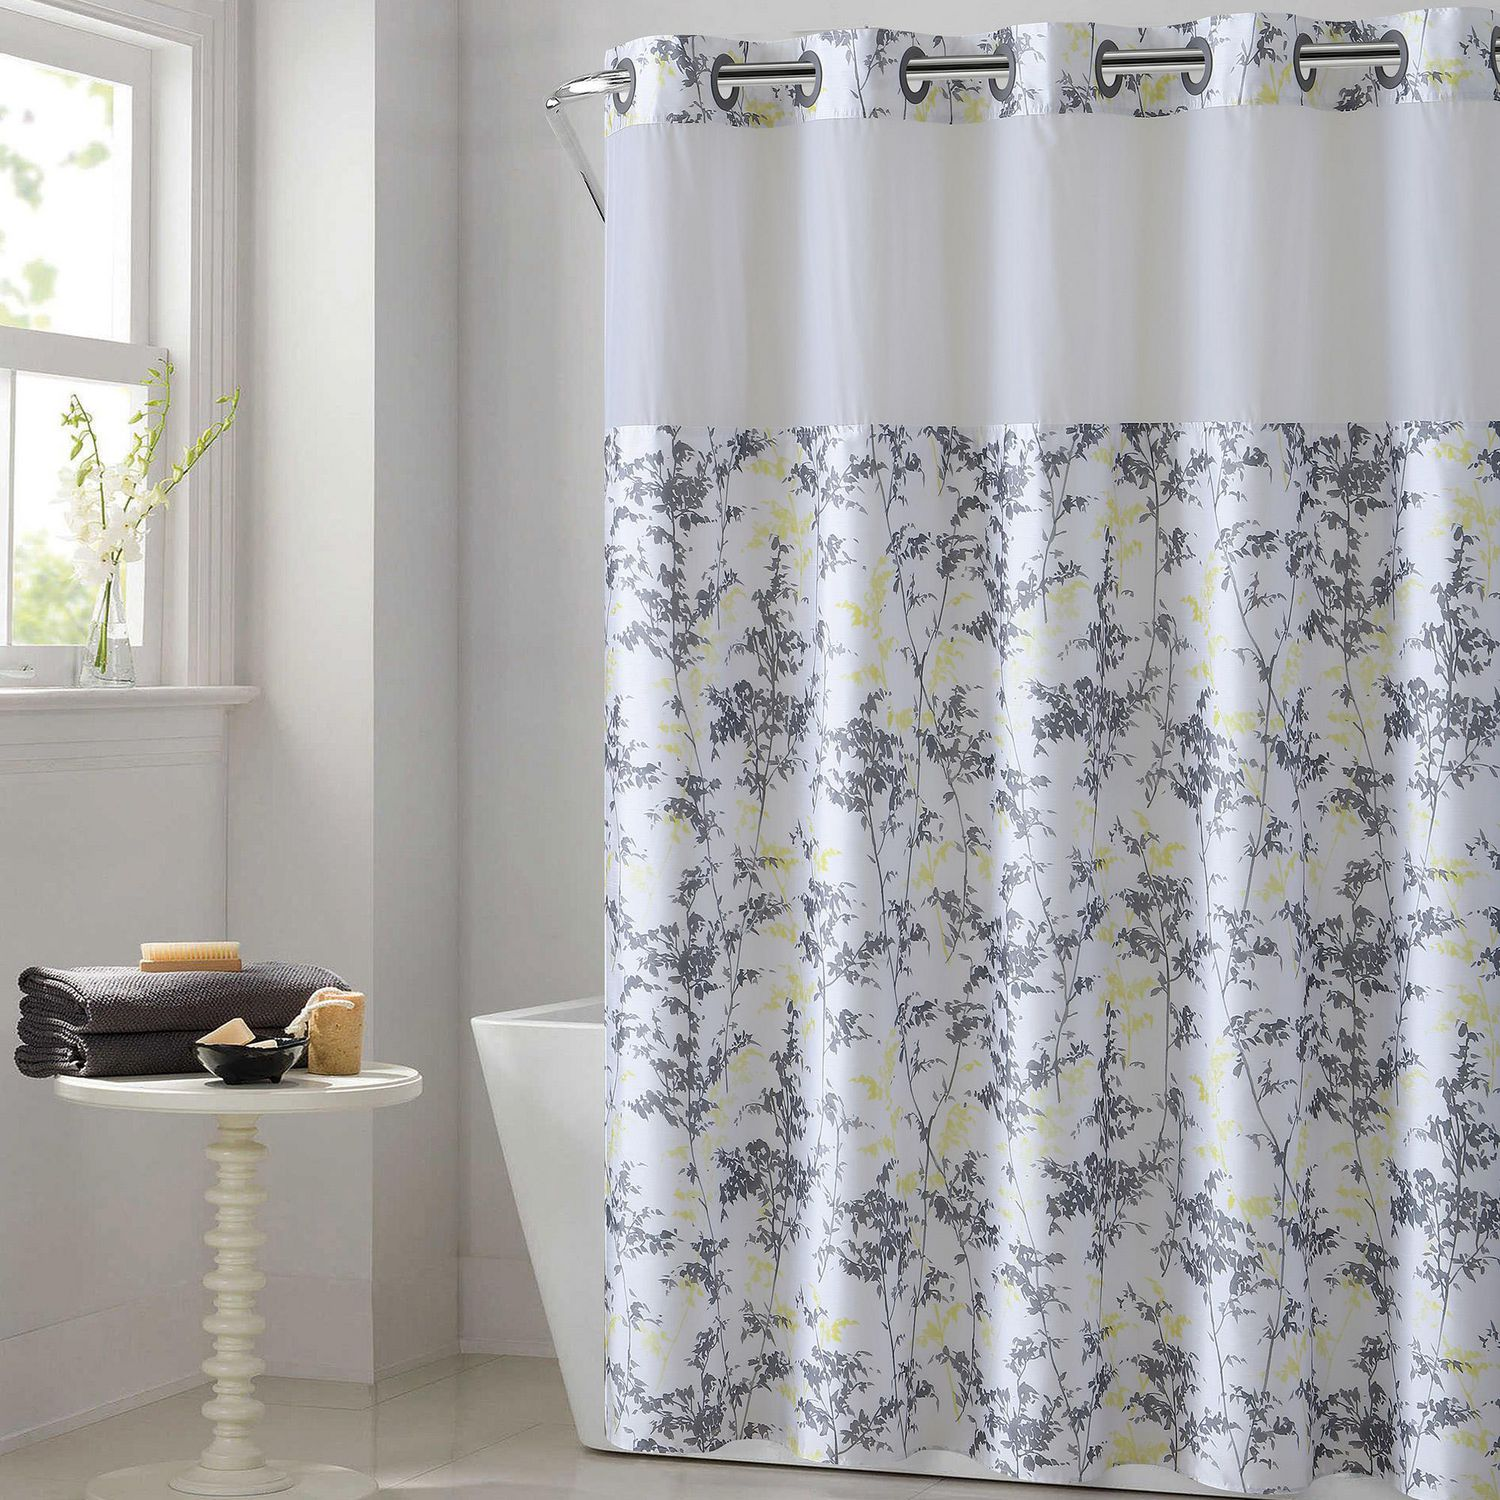 Hookless Floral Leaves Print Shower Curtain With Fabric Liner